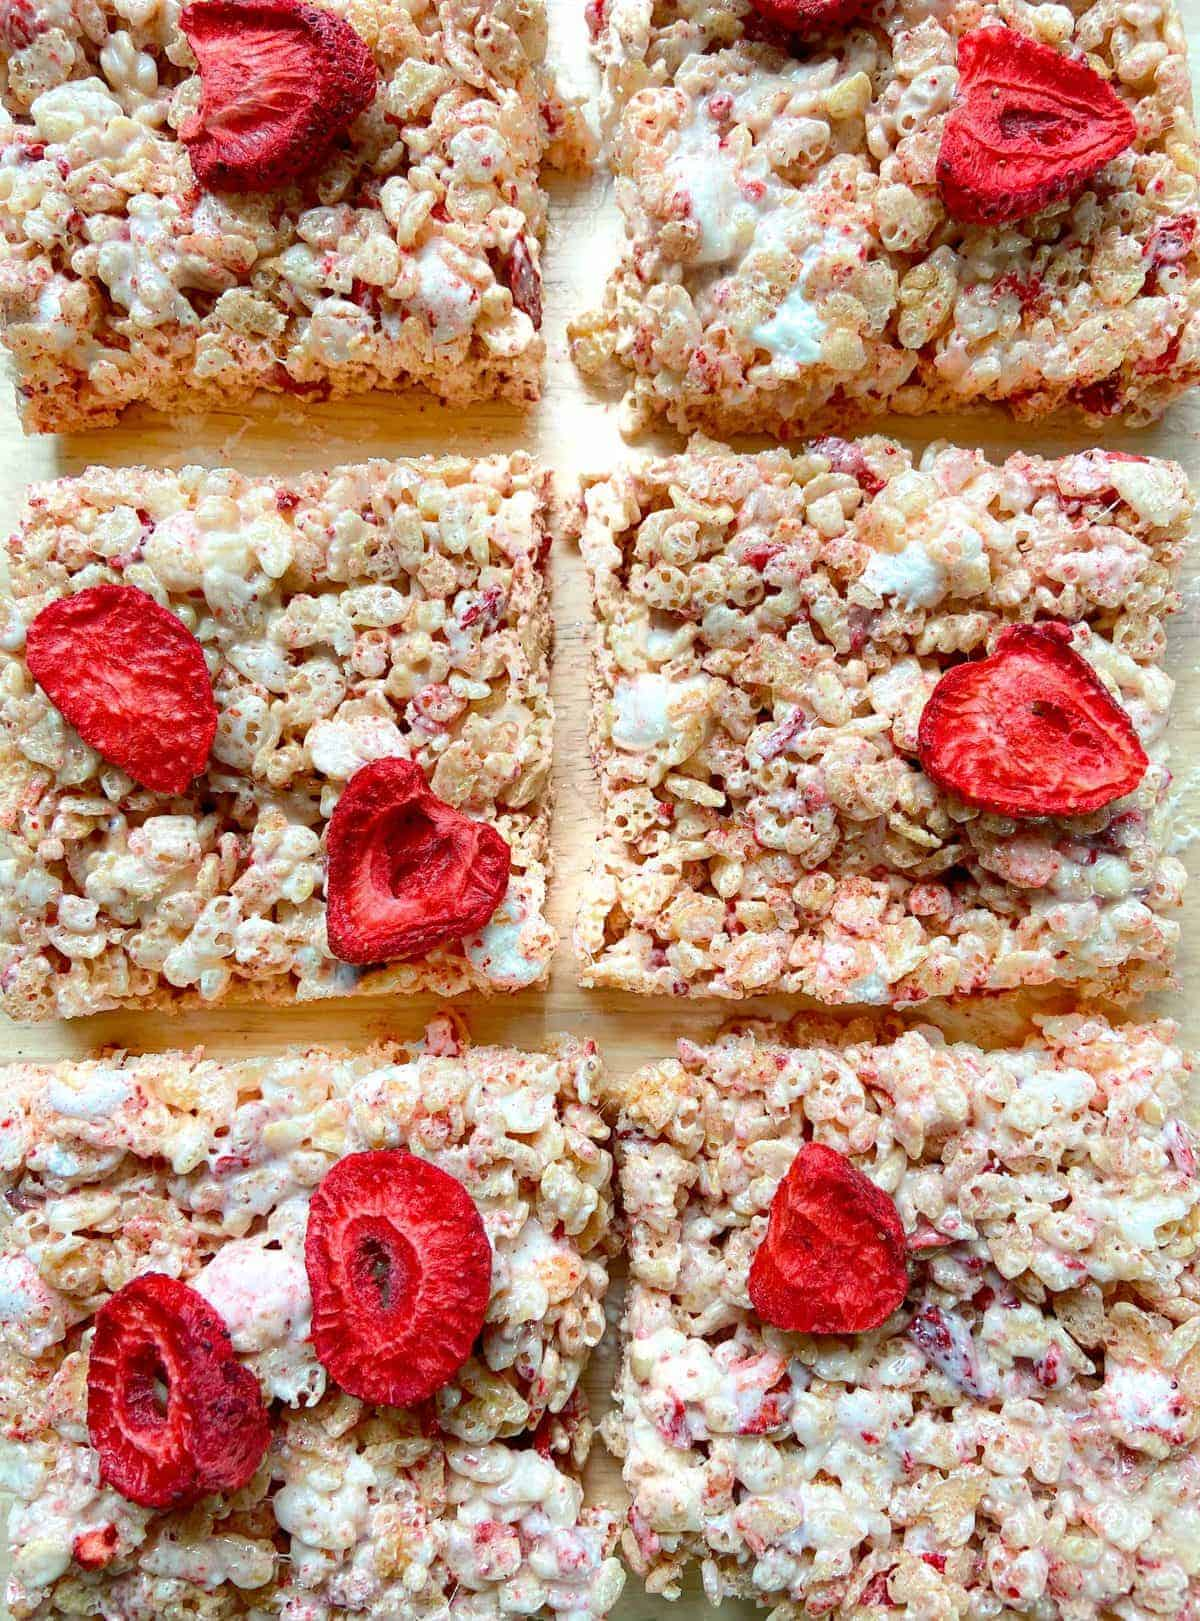 Strawberries and Cream Rice Krispie Treats